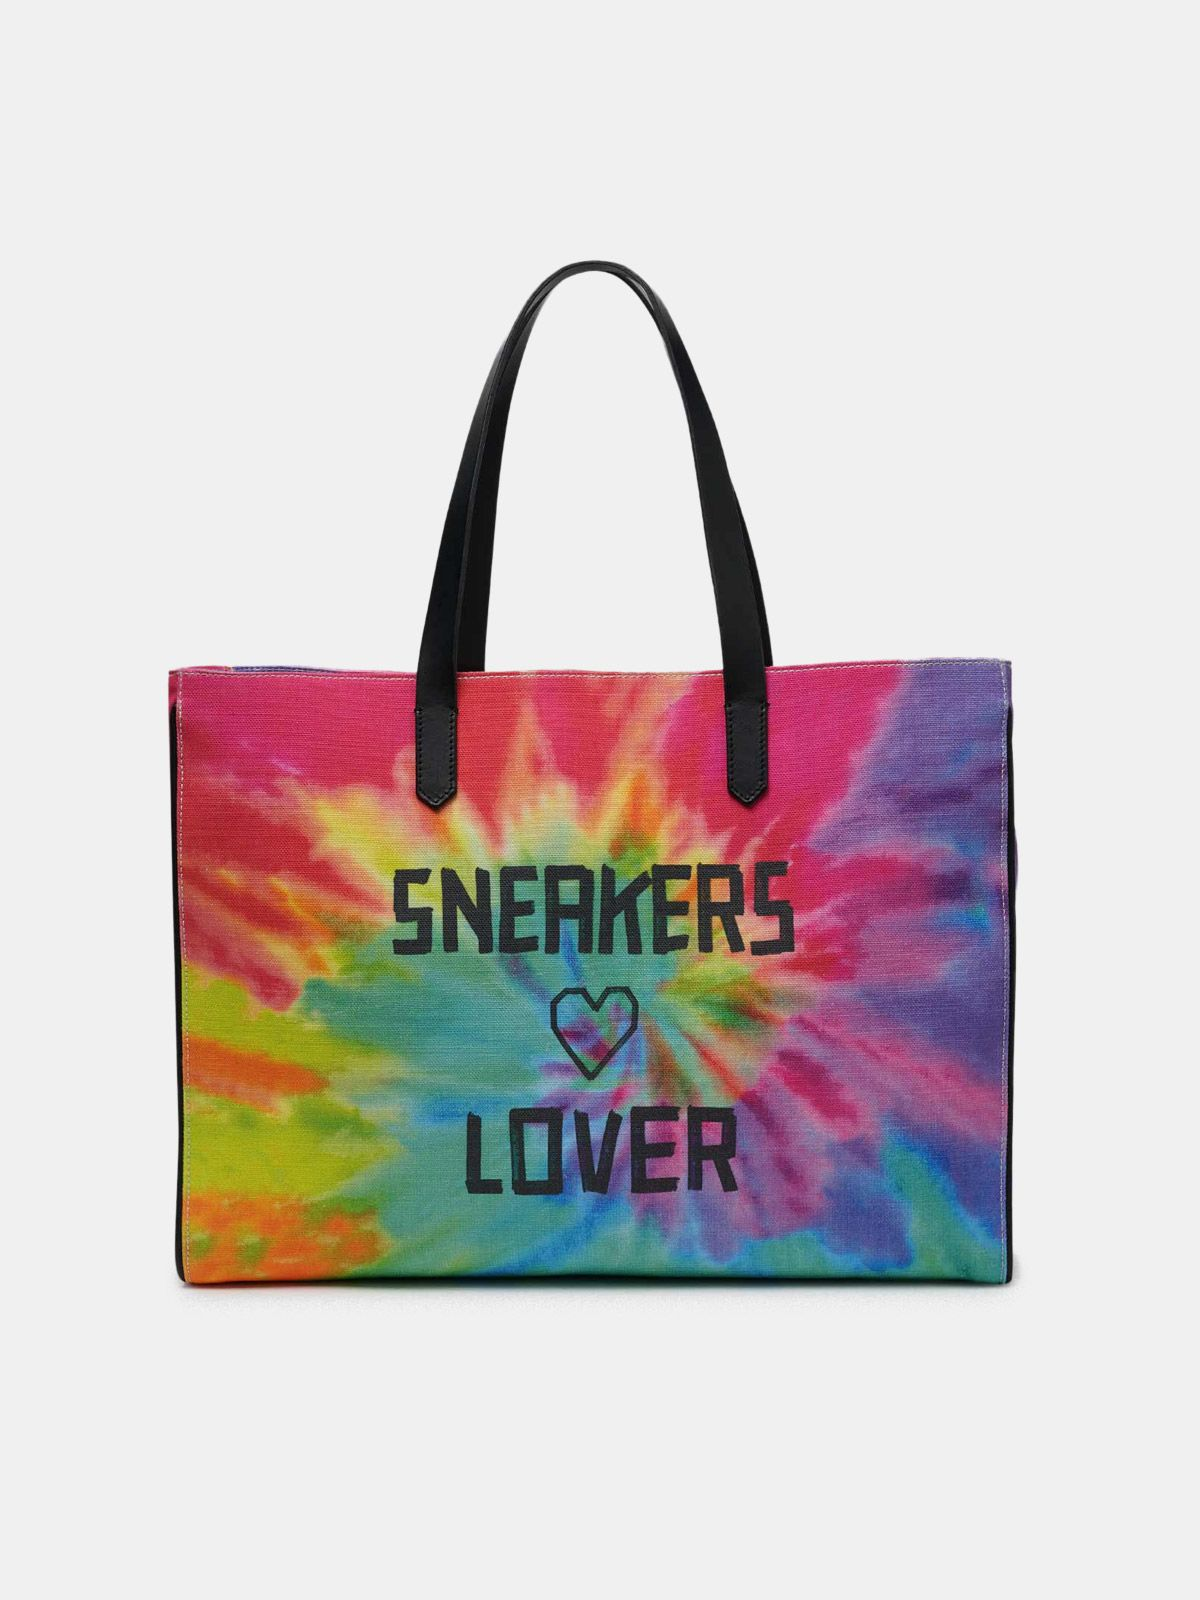 California East-West tie-dye bag with Sneakers Lover print